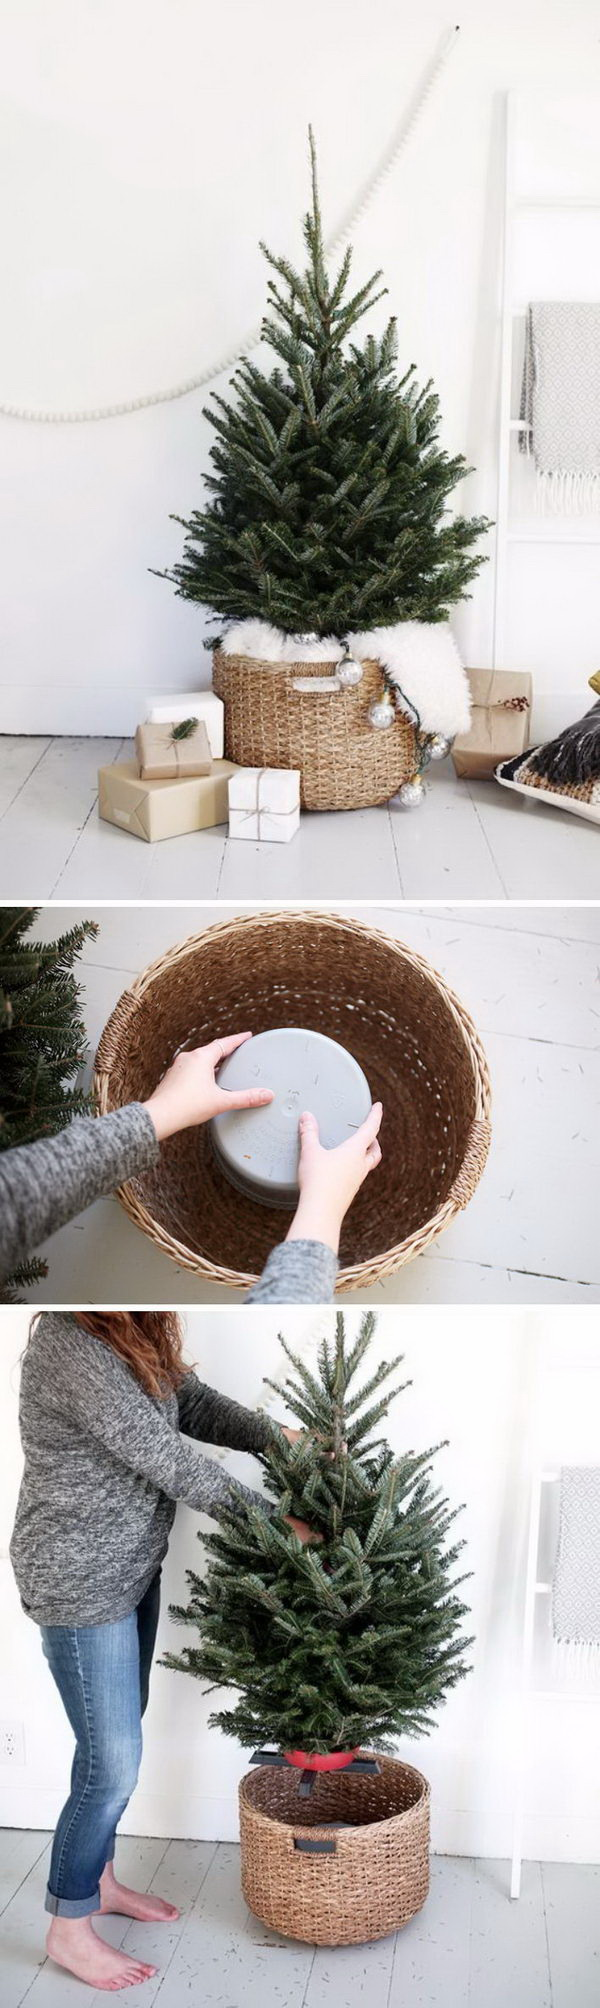 DIY Christmas Tree. Use baskets as a tree base and then put inside a smaller trees,then you can decorate as you like. This is the easiest holiday that you can make for your farmhouse decoration.